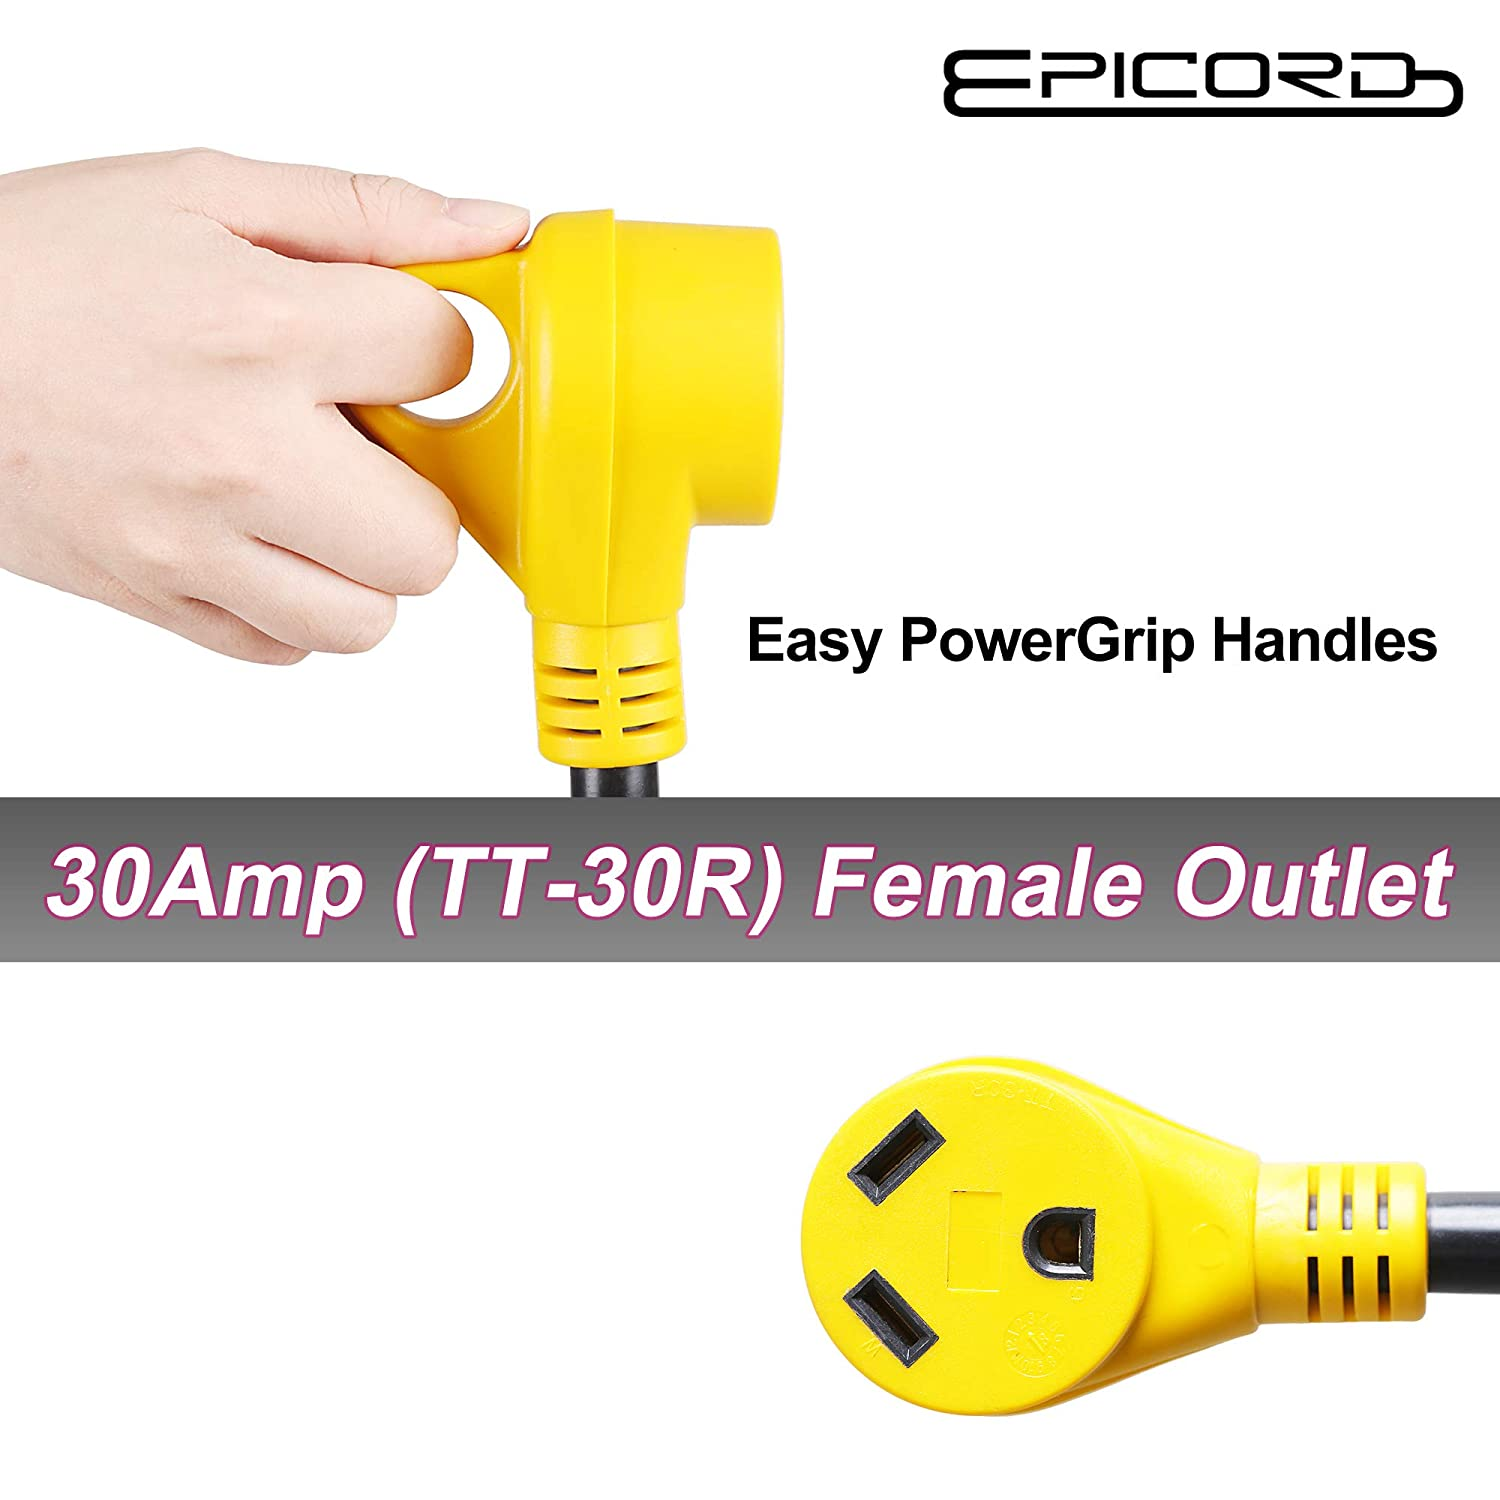 Epicord Dogbone Rv Power Y Adatper Cord 10 3awg With 50 Amp Male Outlet Plug To